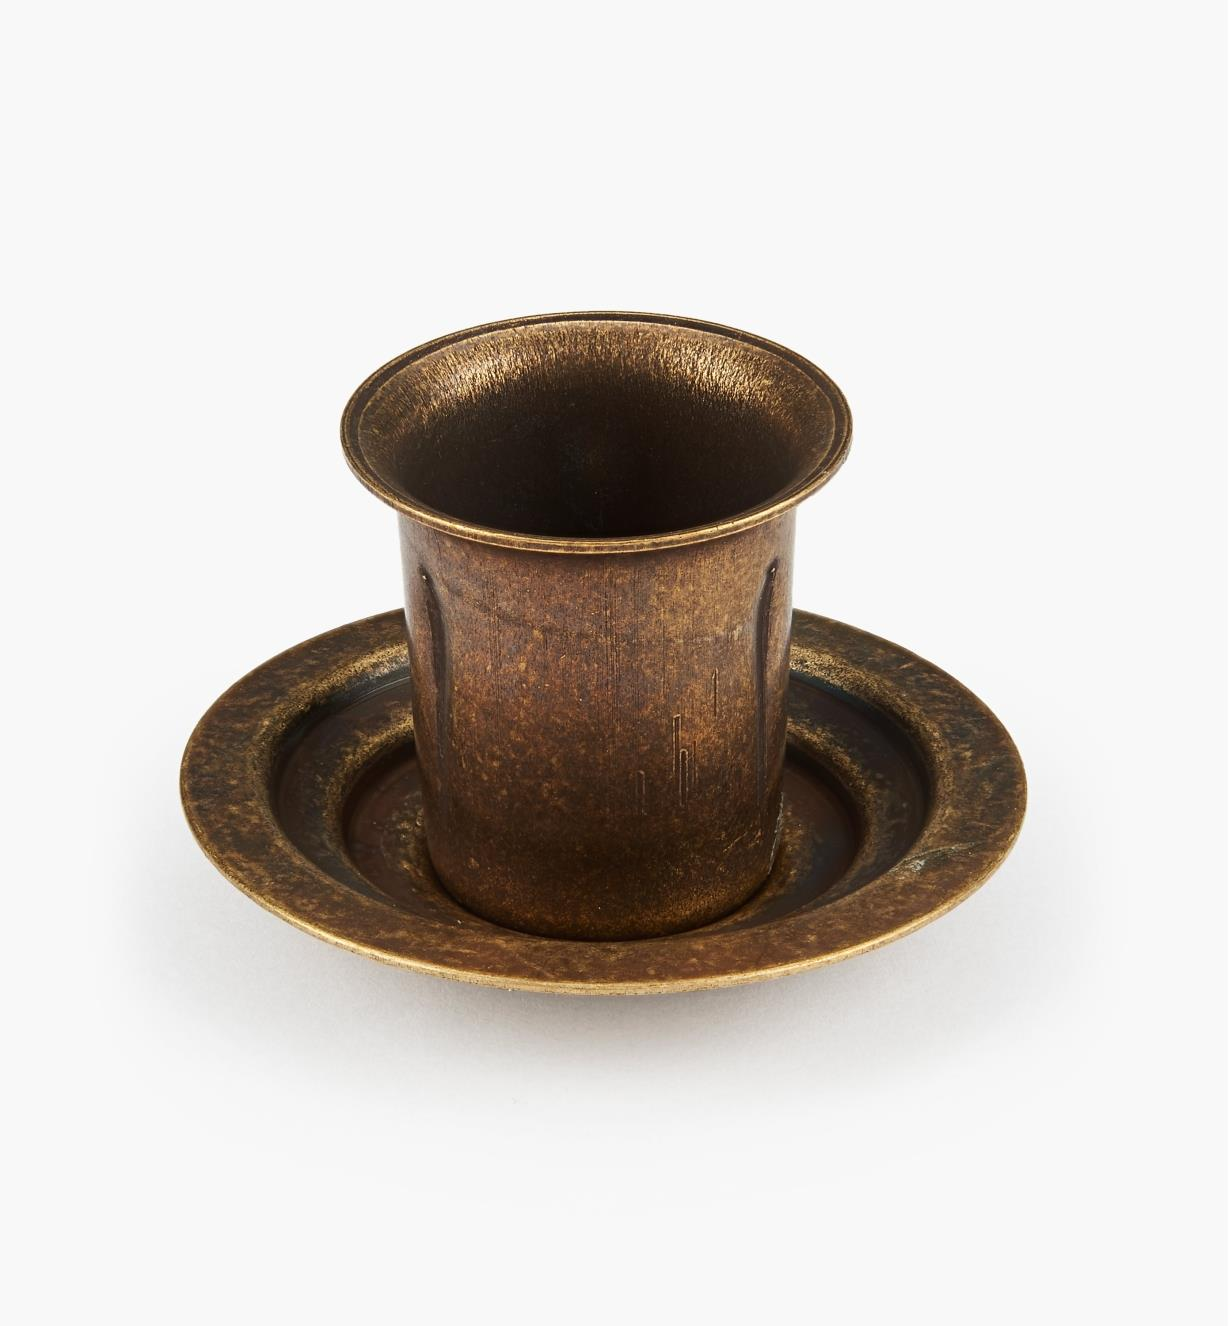 50K5001 - Candle Cup Holder, each